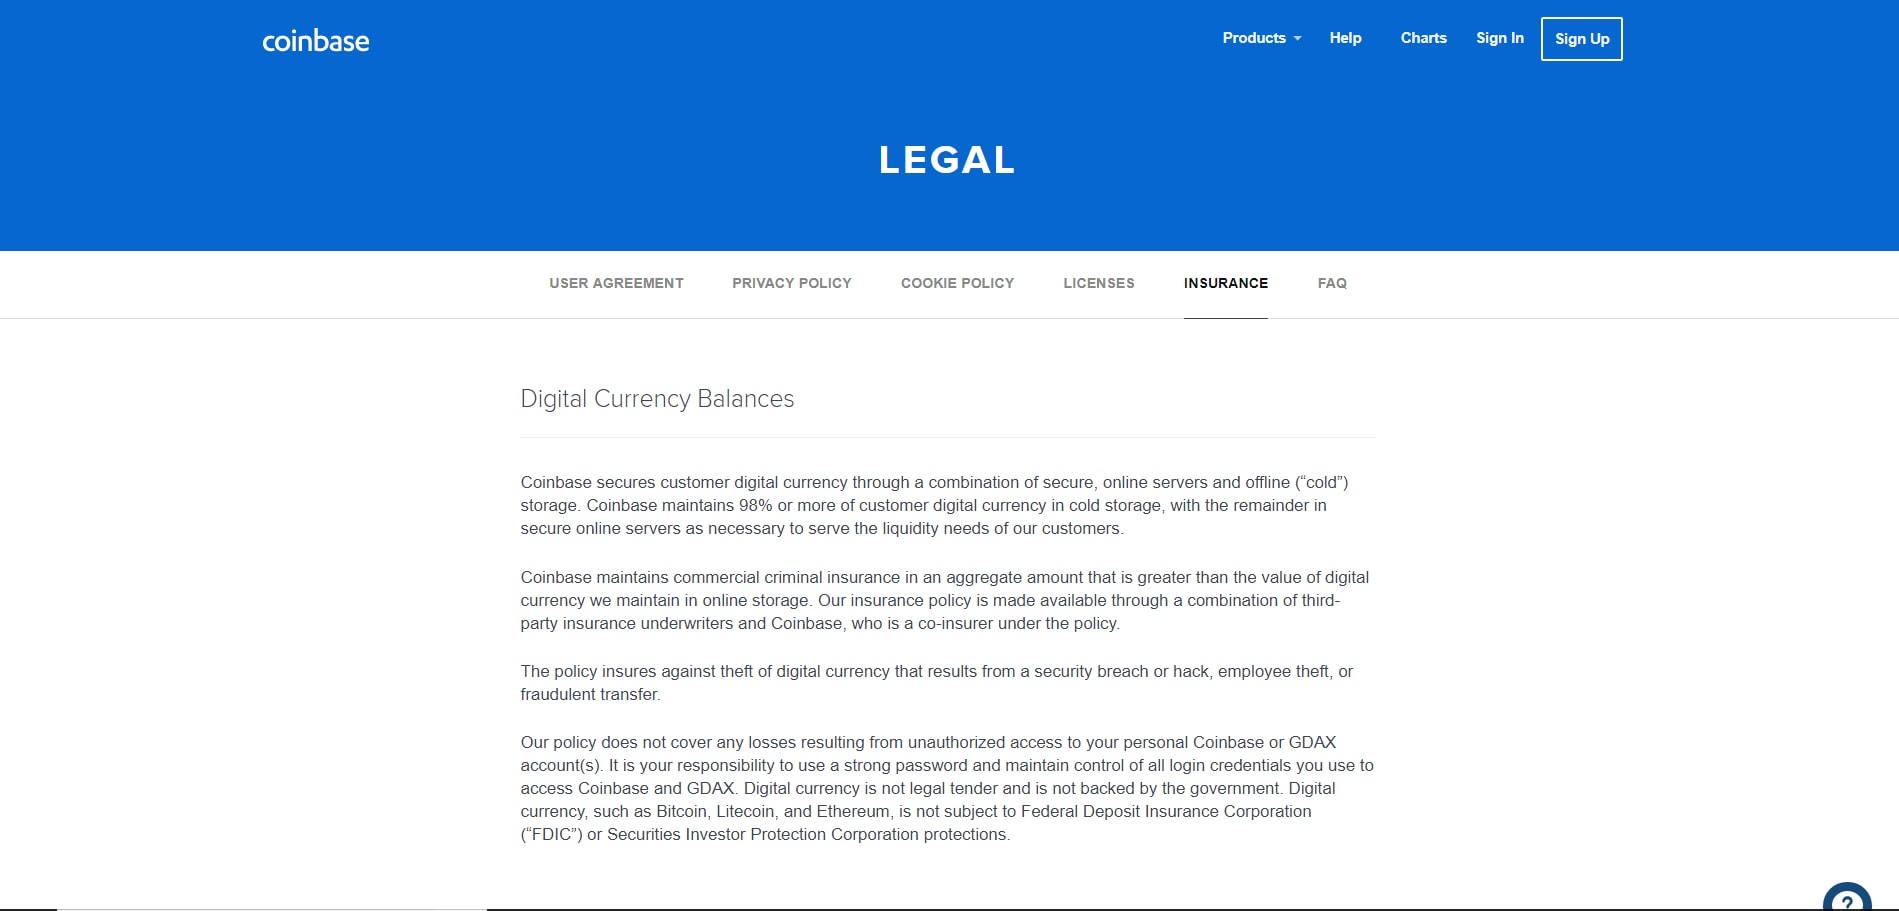 Review of Coinbase legal page